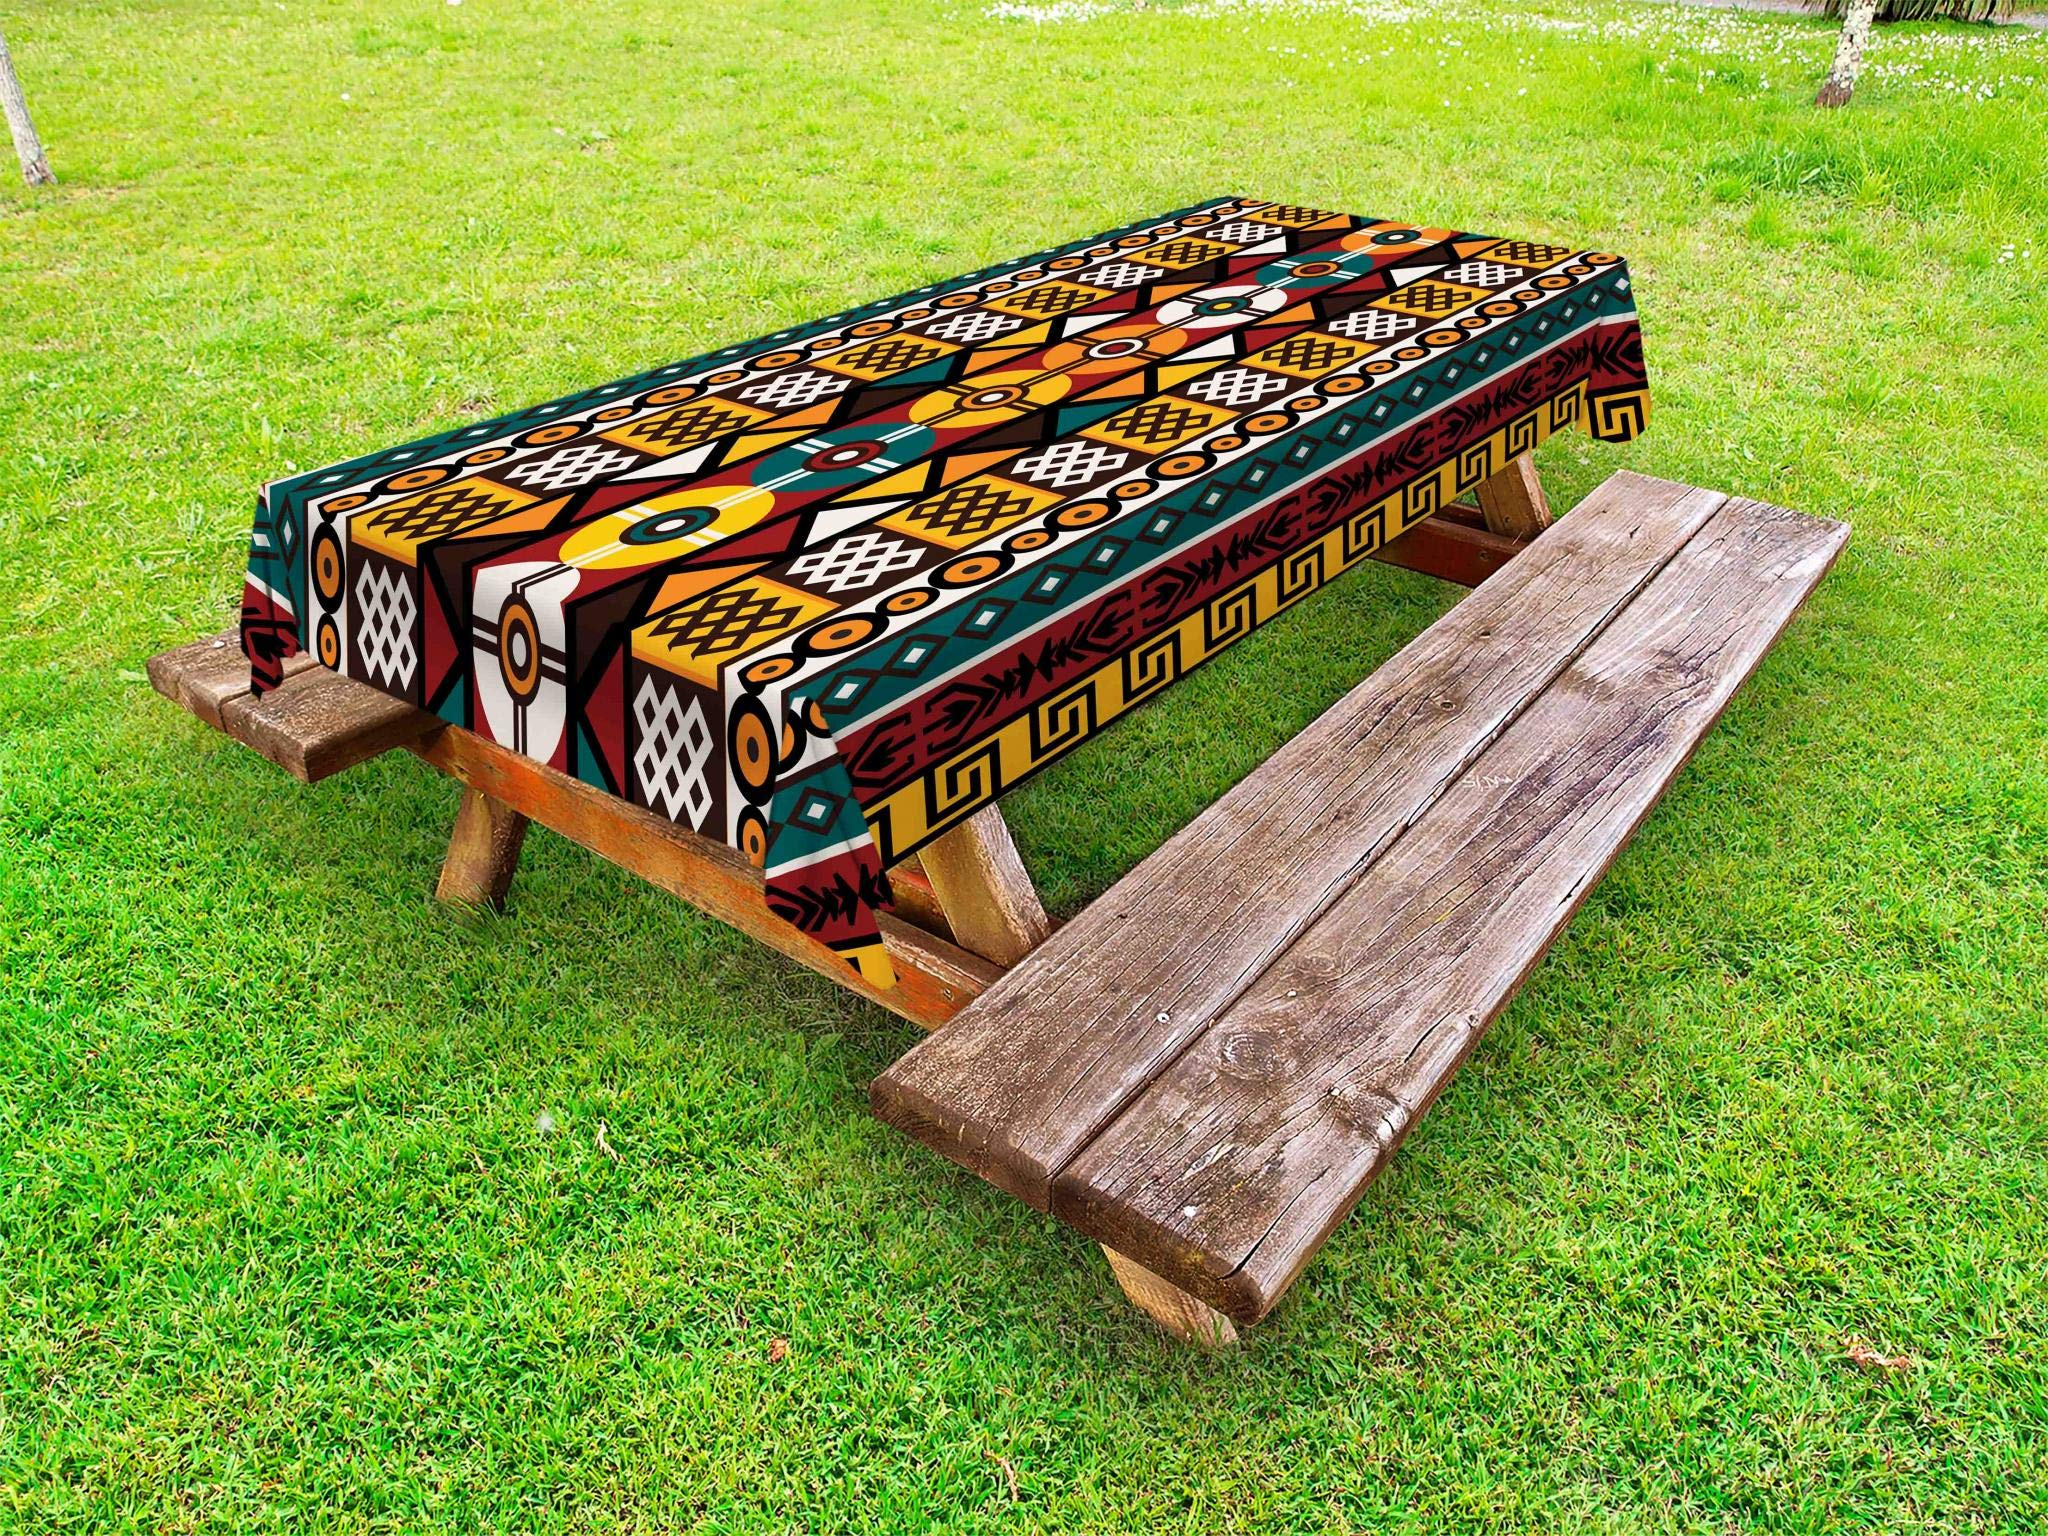 Ambesonne Kente Pattern Outdoor Tablecloth, Vertical Borders Inspired by Primitive African Cultures Geometrical Design, Decorative Washable Picnic Table Cloth, 58 X 84 Inches, Multicolor